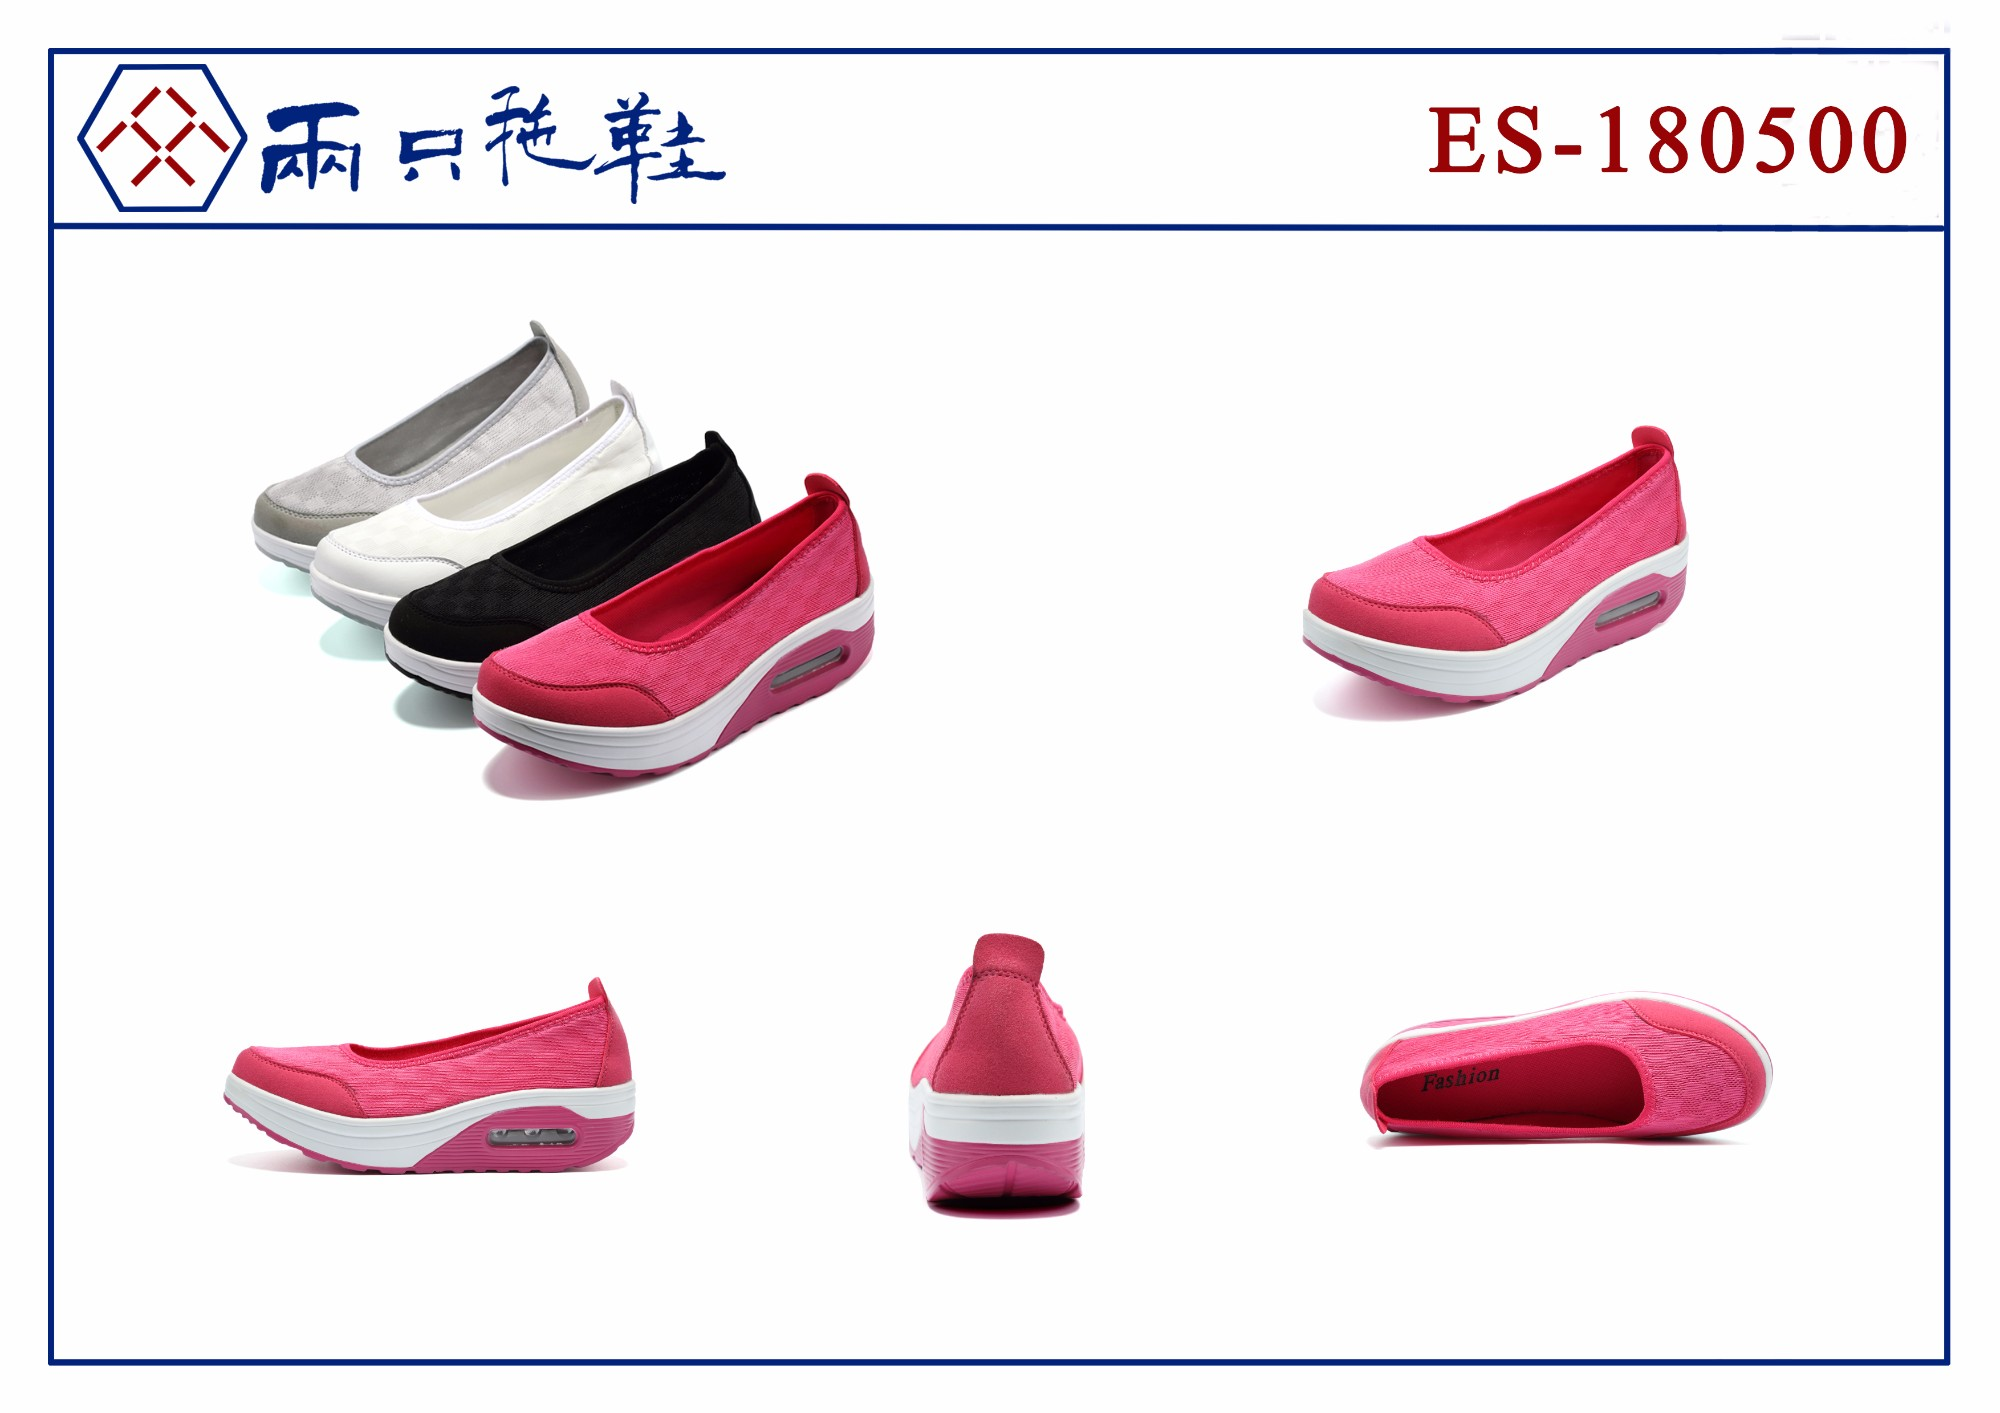 Slimming shoes